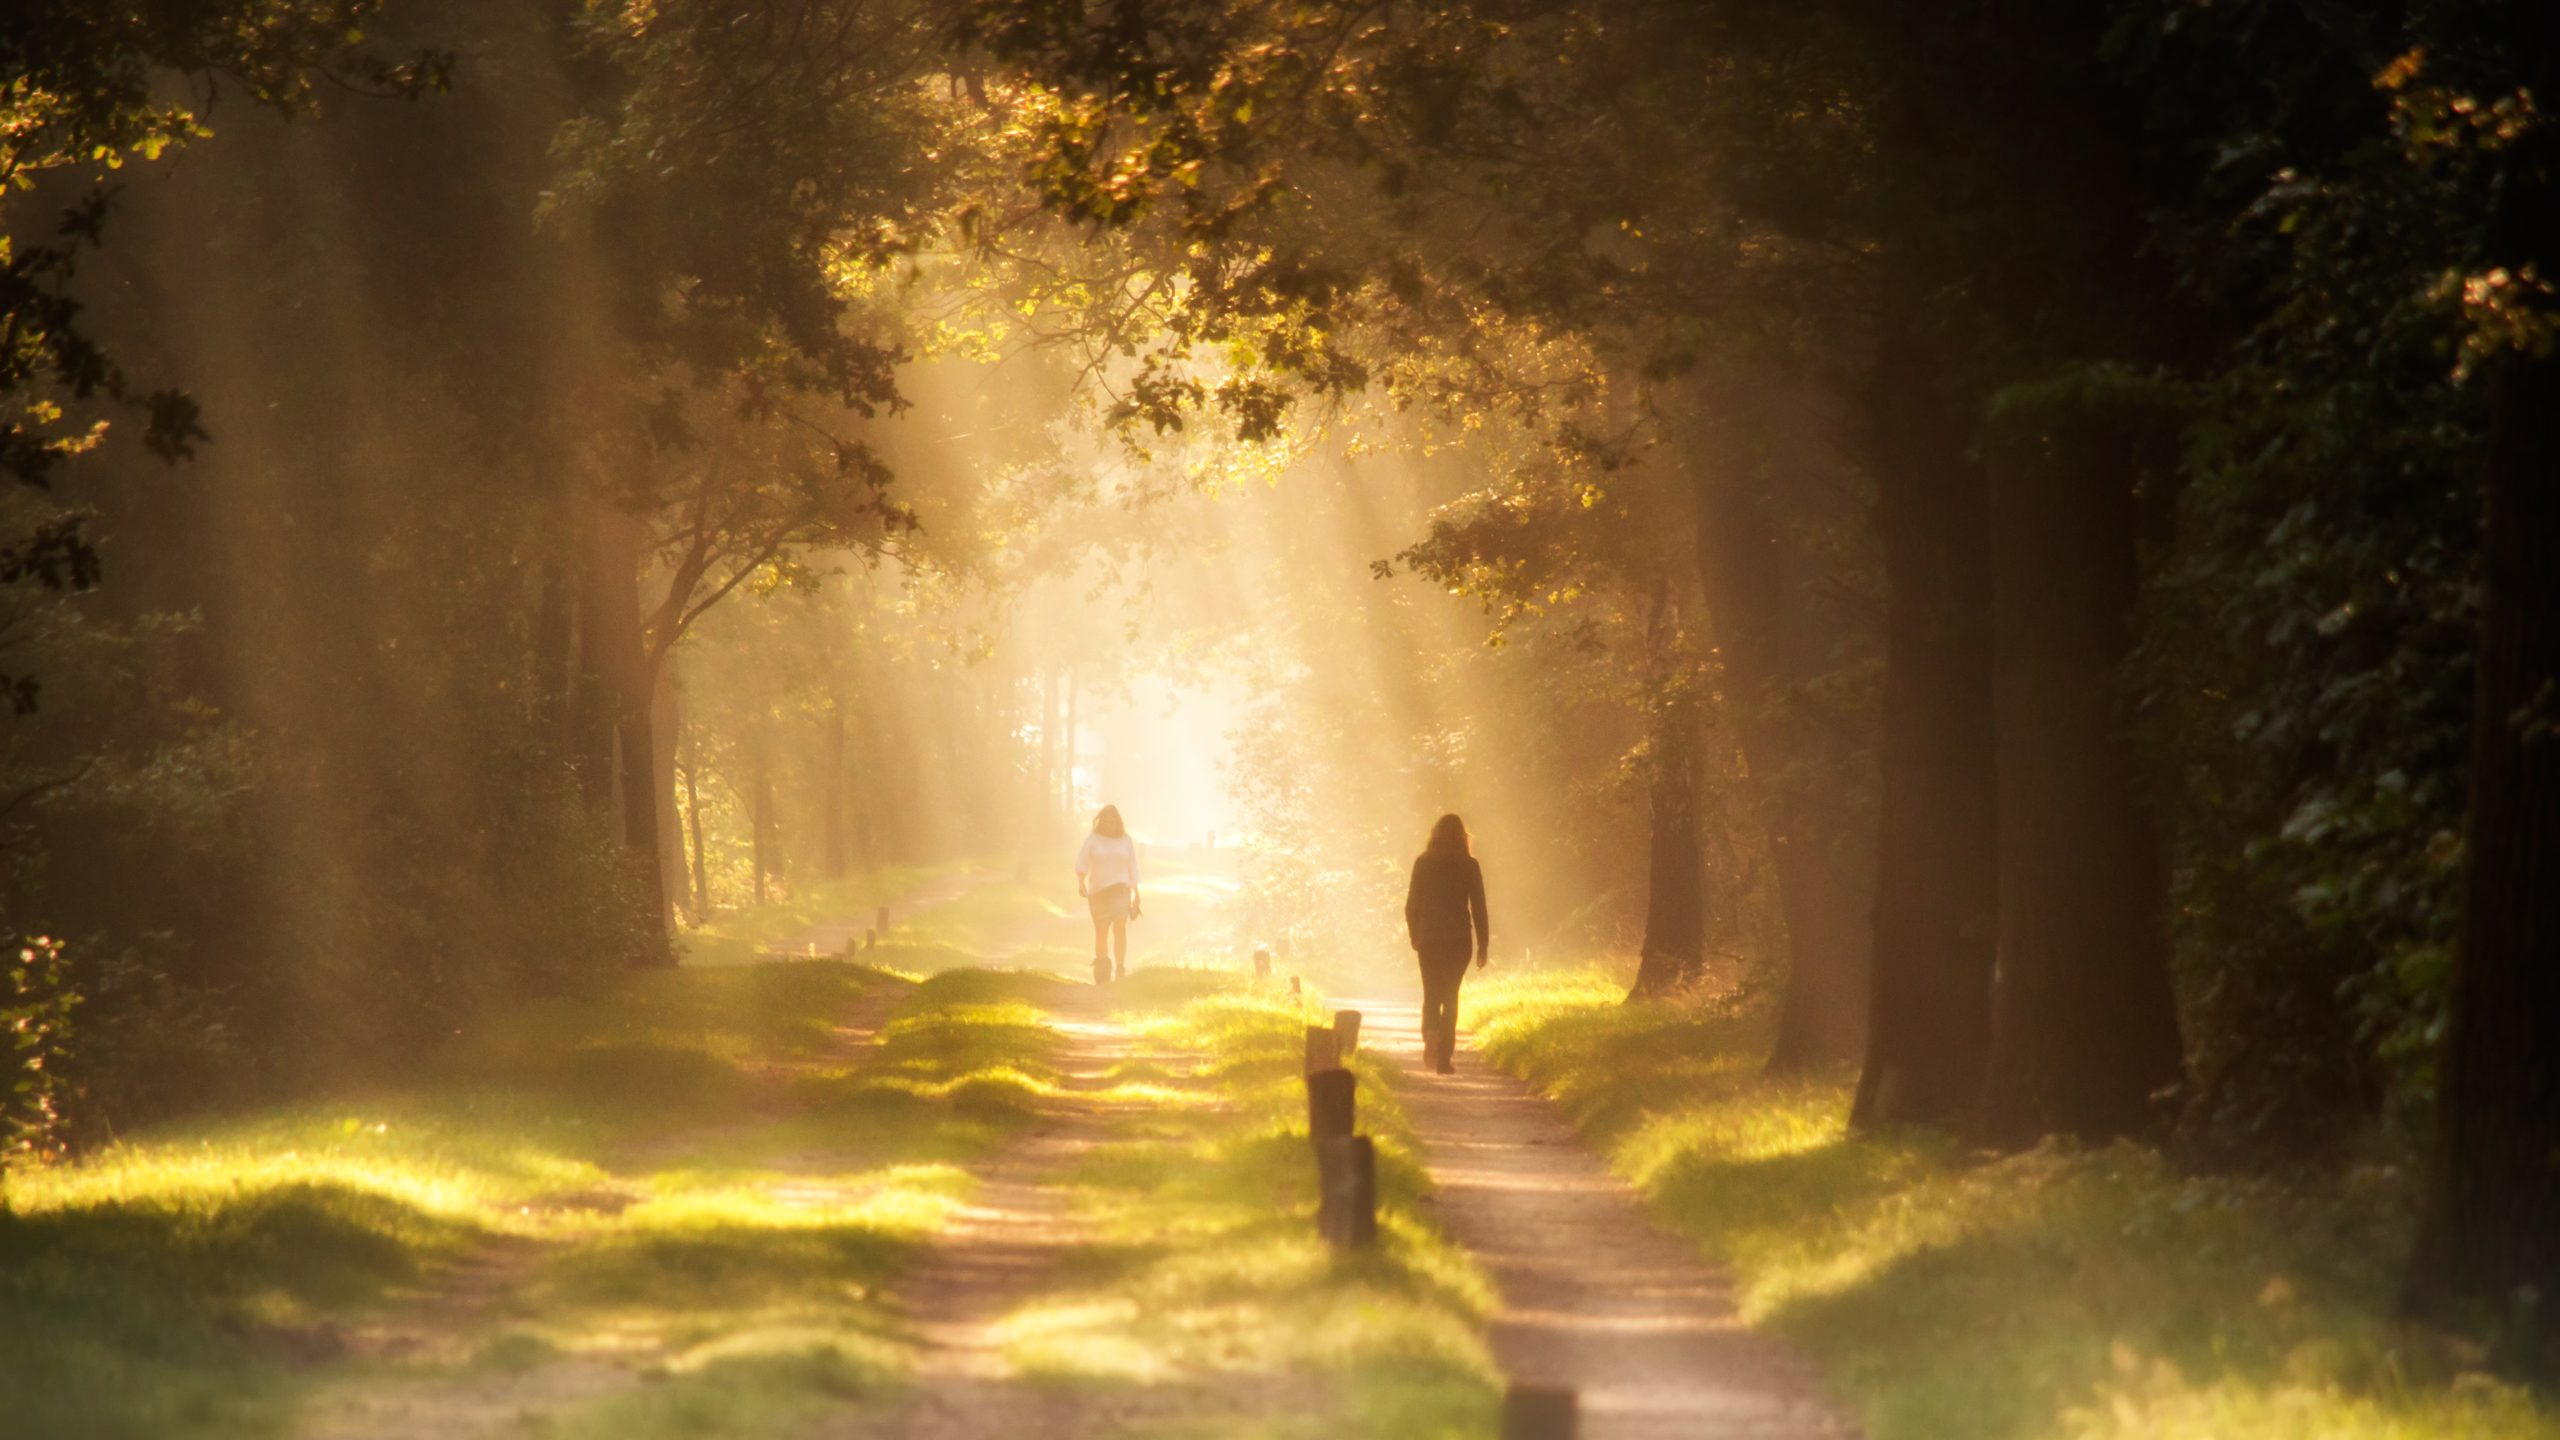 two people walking down two parallel paths towards the light in the forest